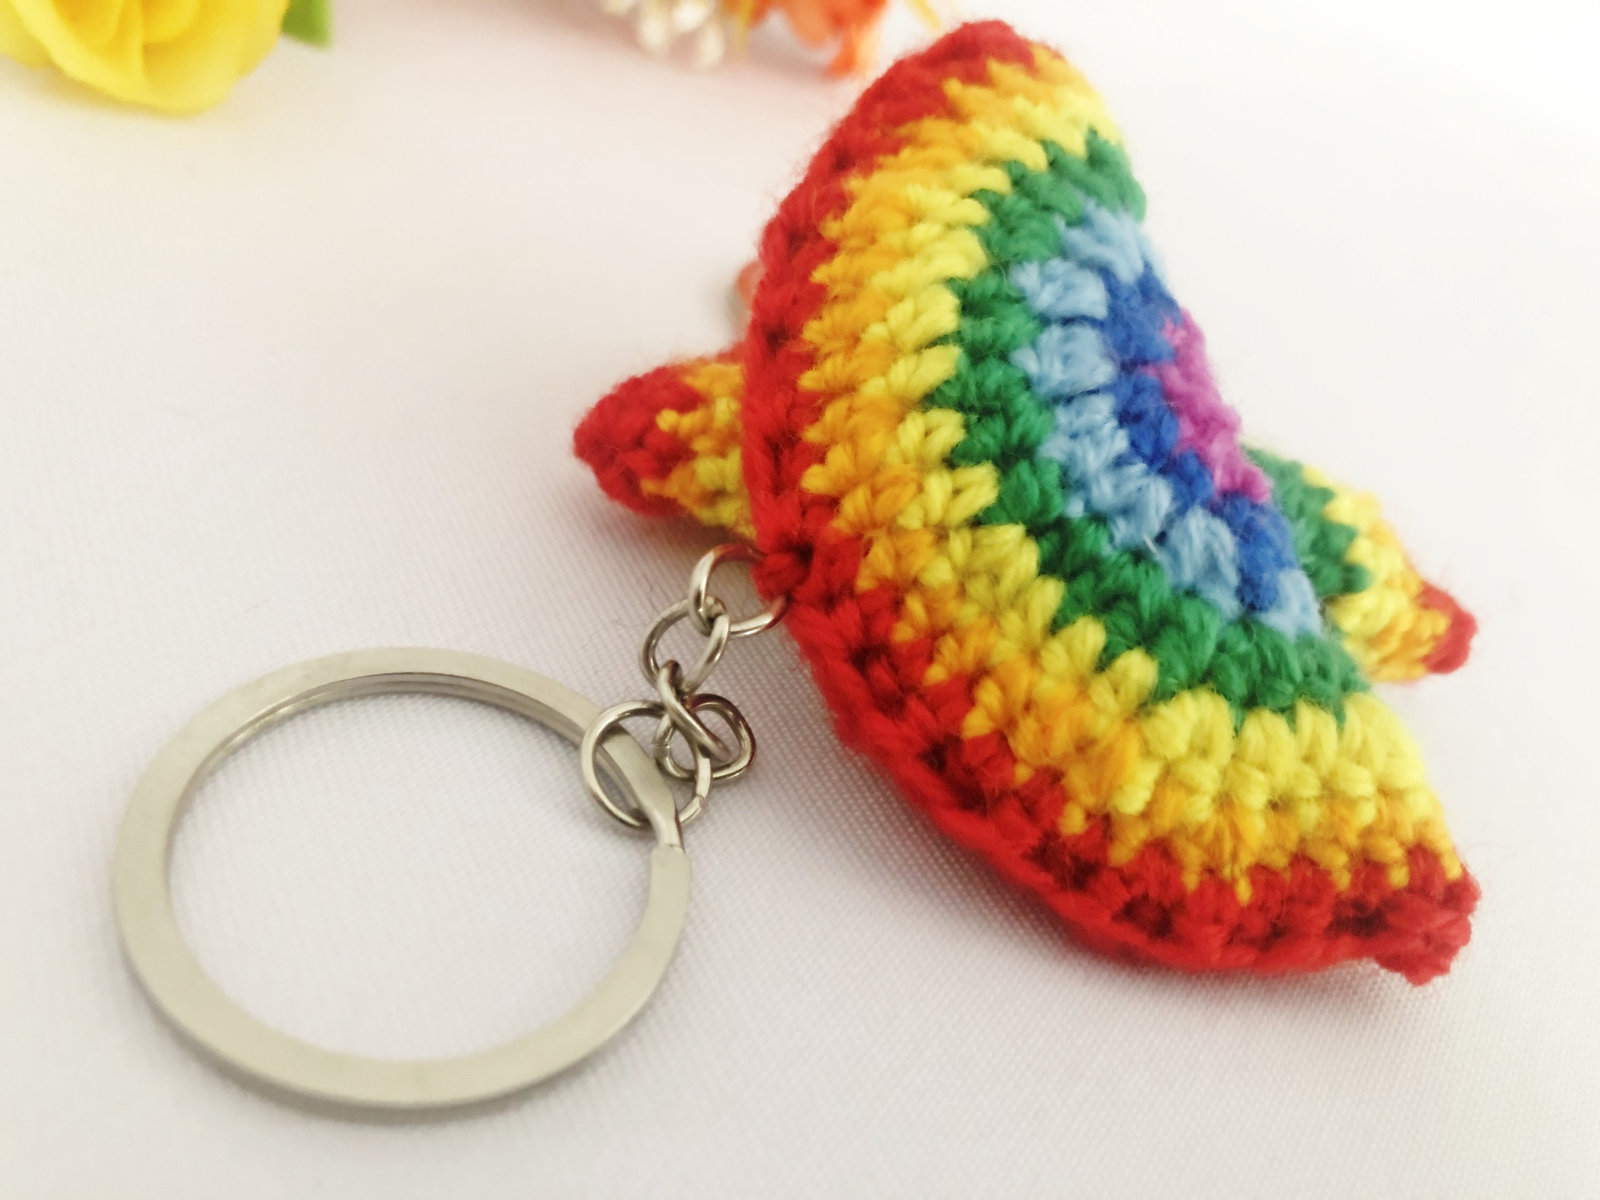 Primary image for Rainbow Keyring Crochet Gift Keychain Handmade Present For New Year Season